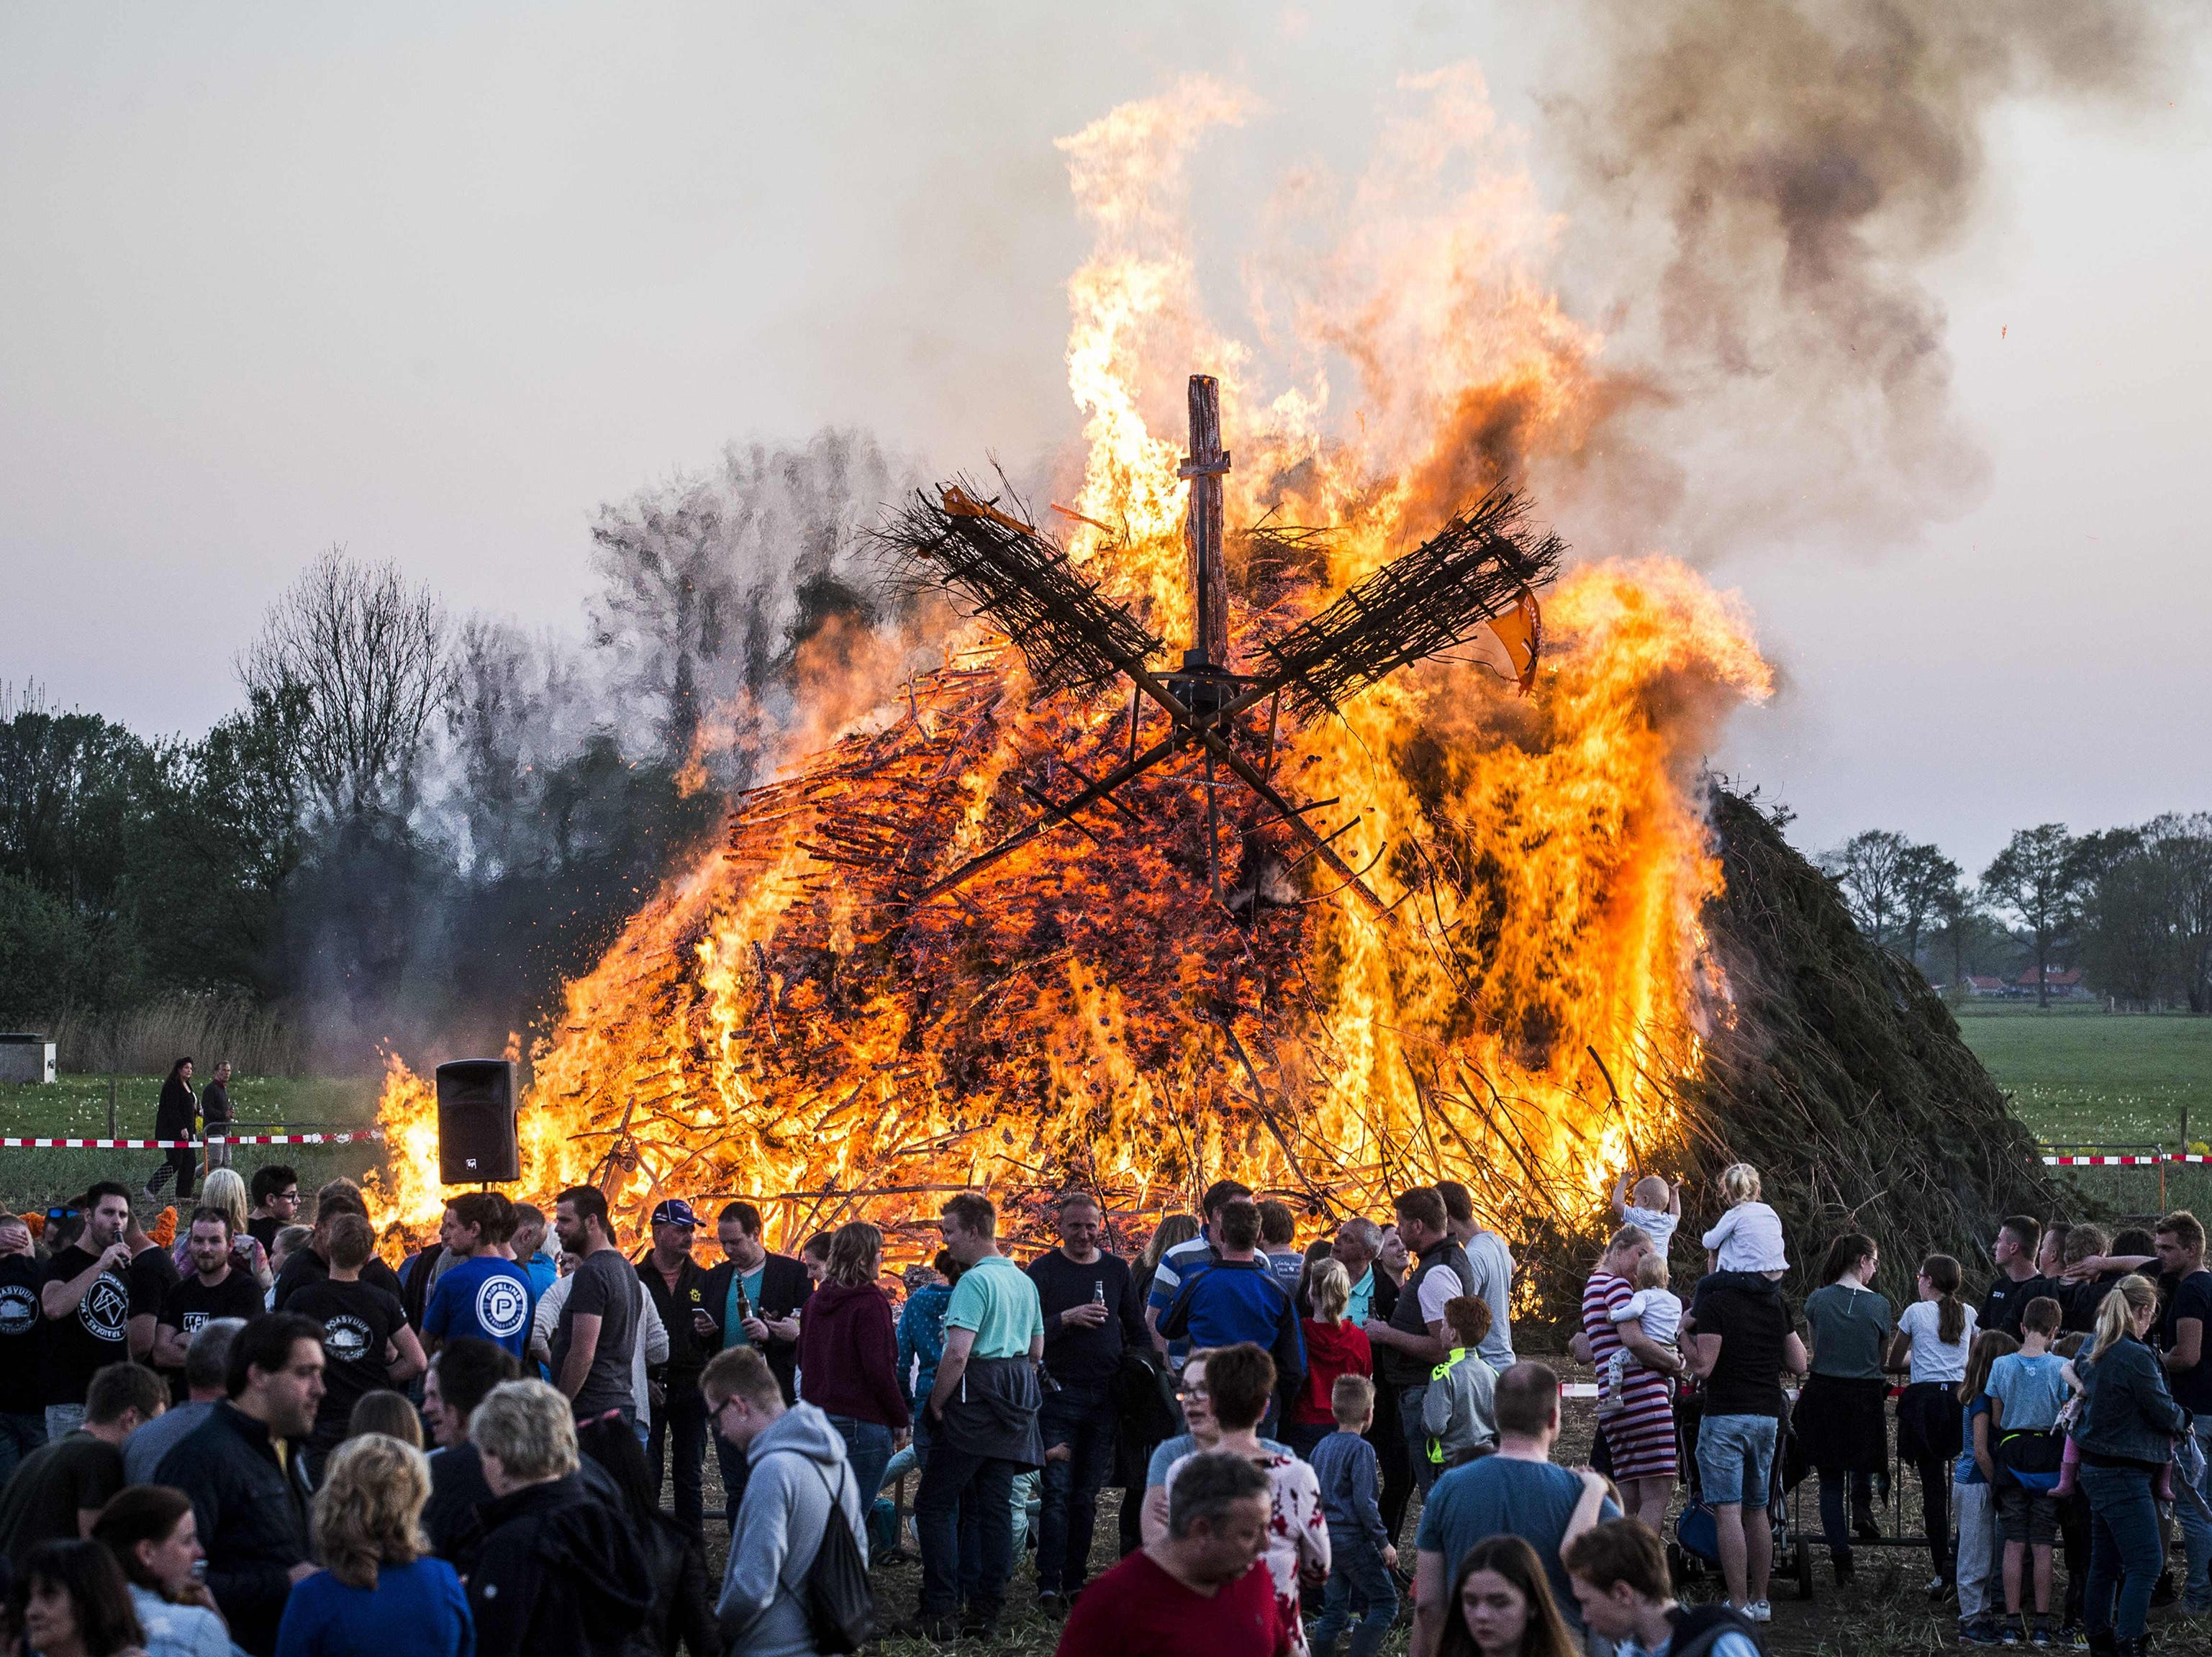 People look at a traditional Easter fire marking Easter Sunday, on April 21, 2019 in Dijkerhoek, Netherlands.